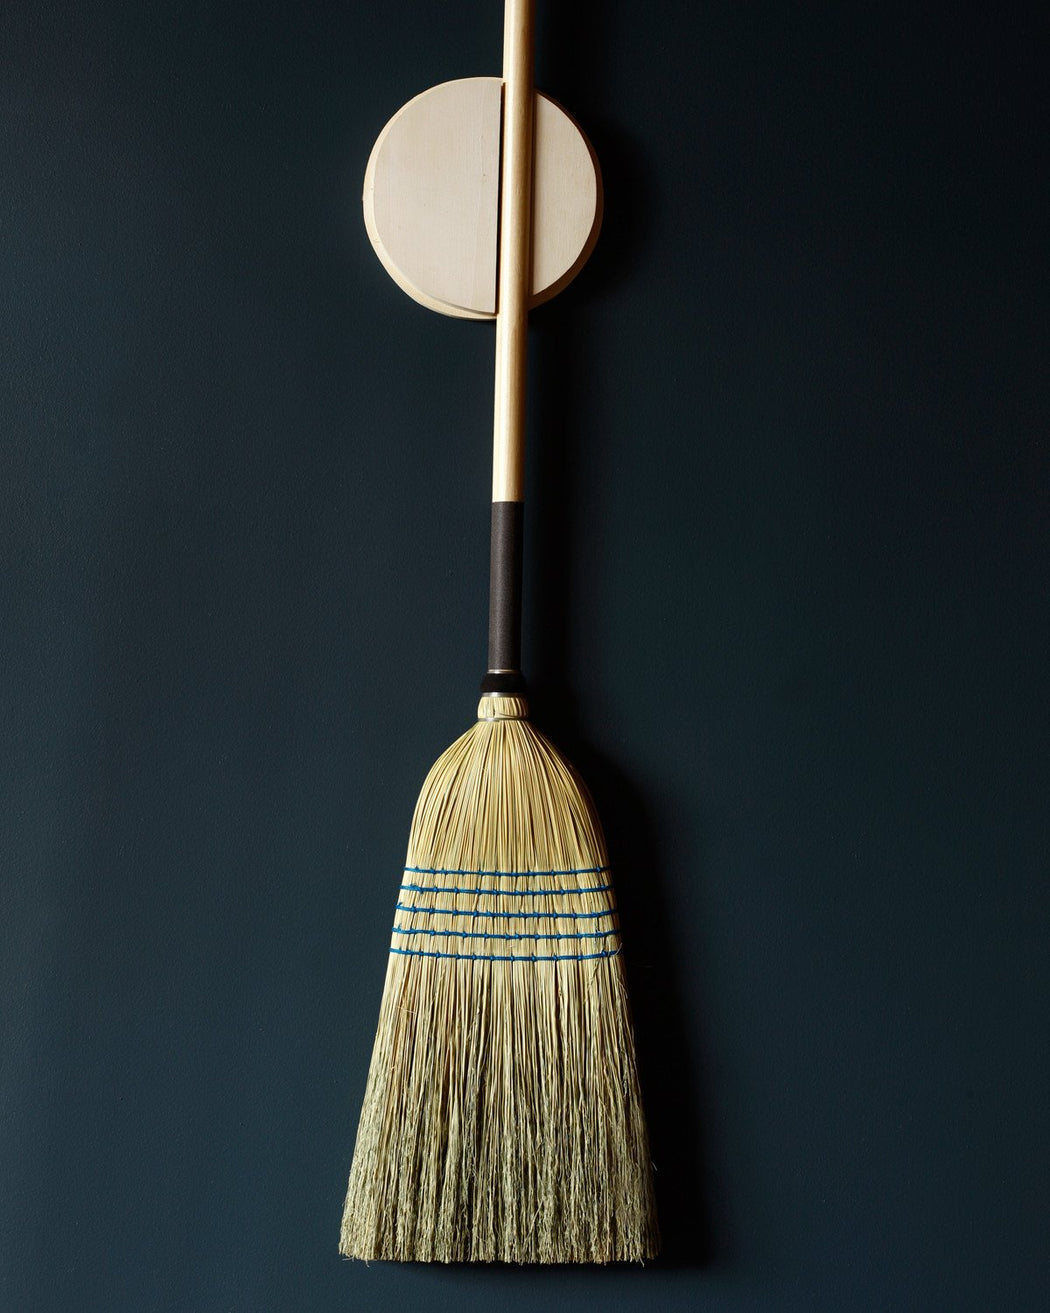 Lostine Broom Holder with Barn Broom